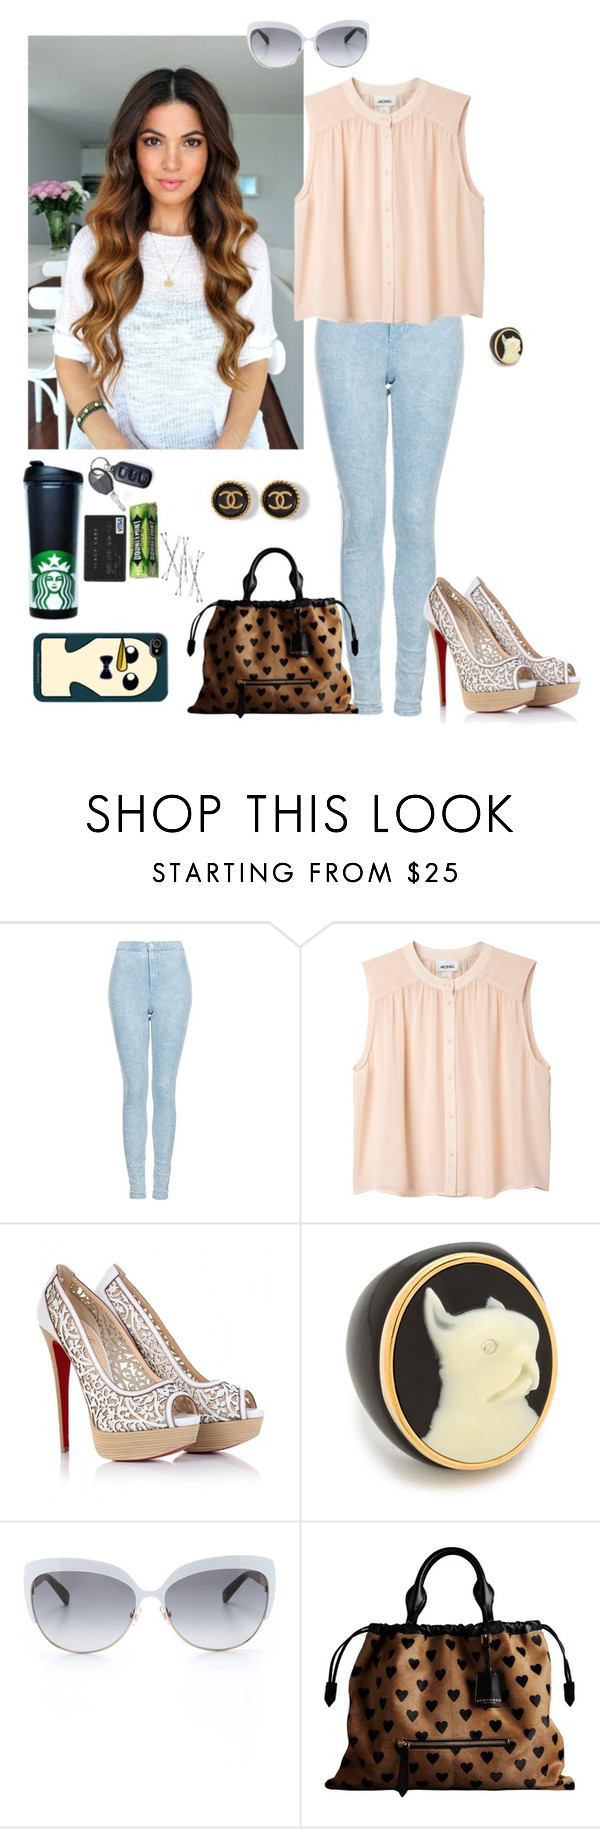 """gotta get out, can't stay in the house"" by dearme-xoxo on Polyvore featuring moda, Topshop, Monki, Christian Louboutin, Marc by Marc Jacobs, Kate Spade e Burberry"